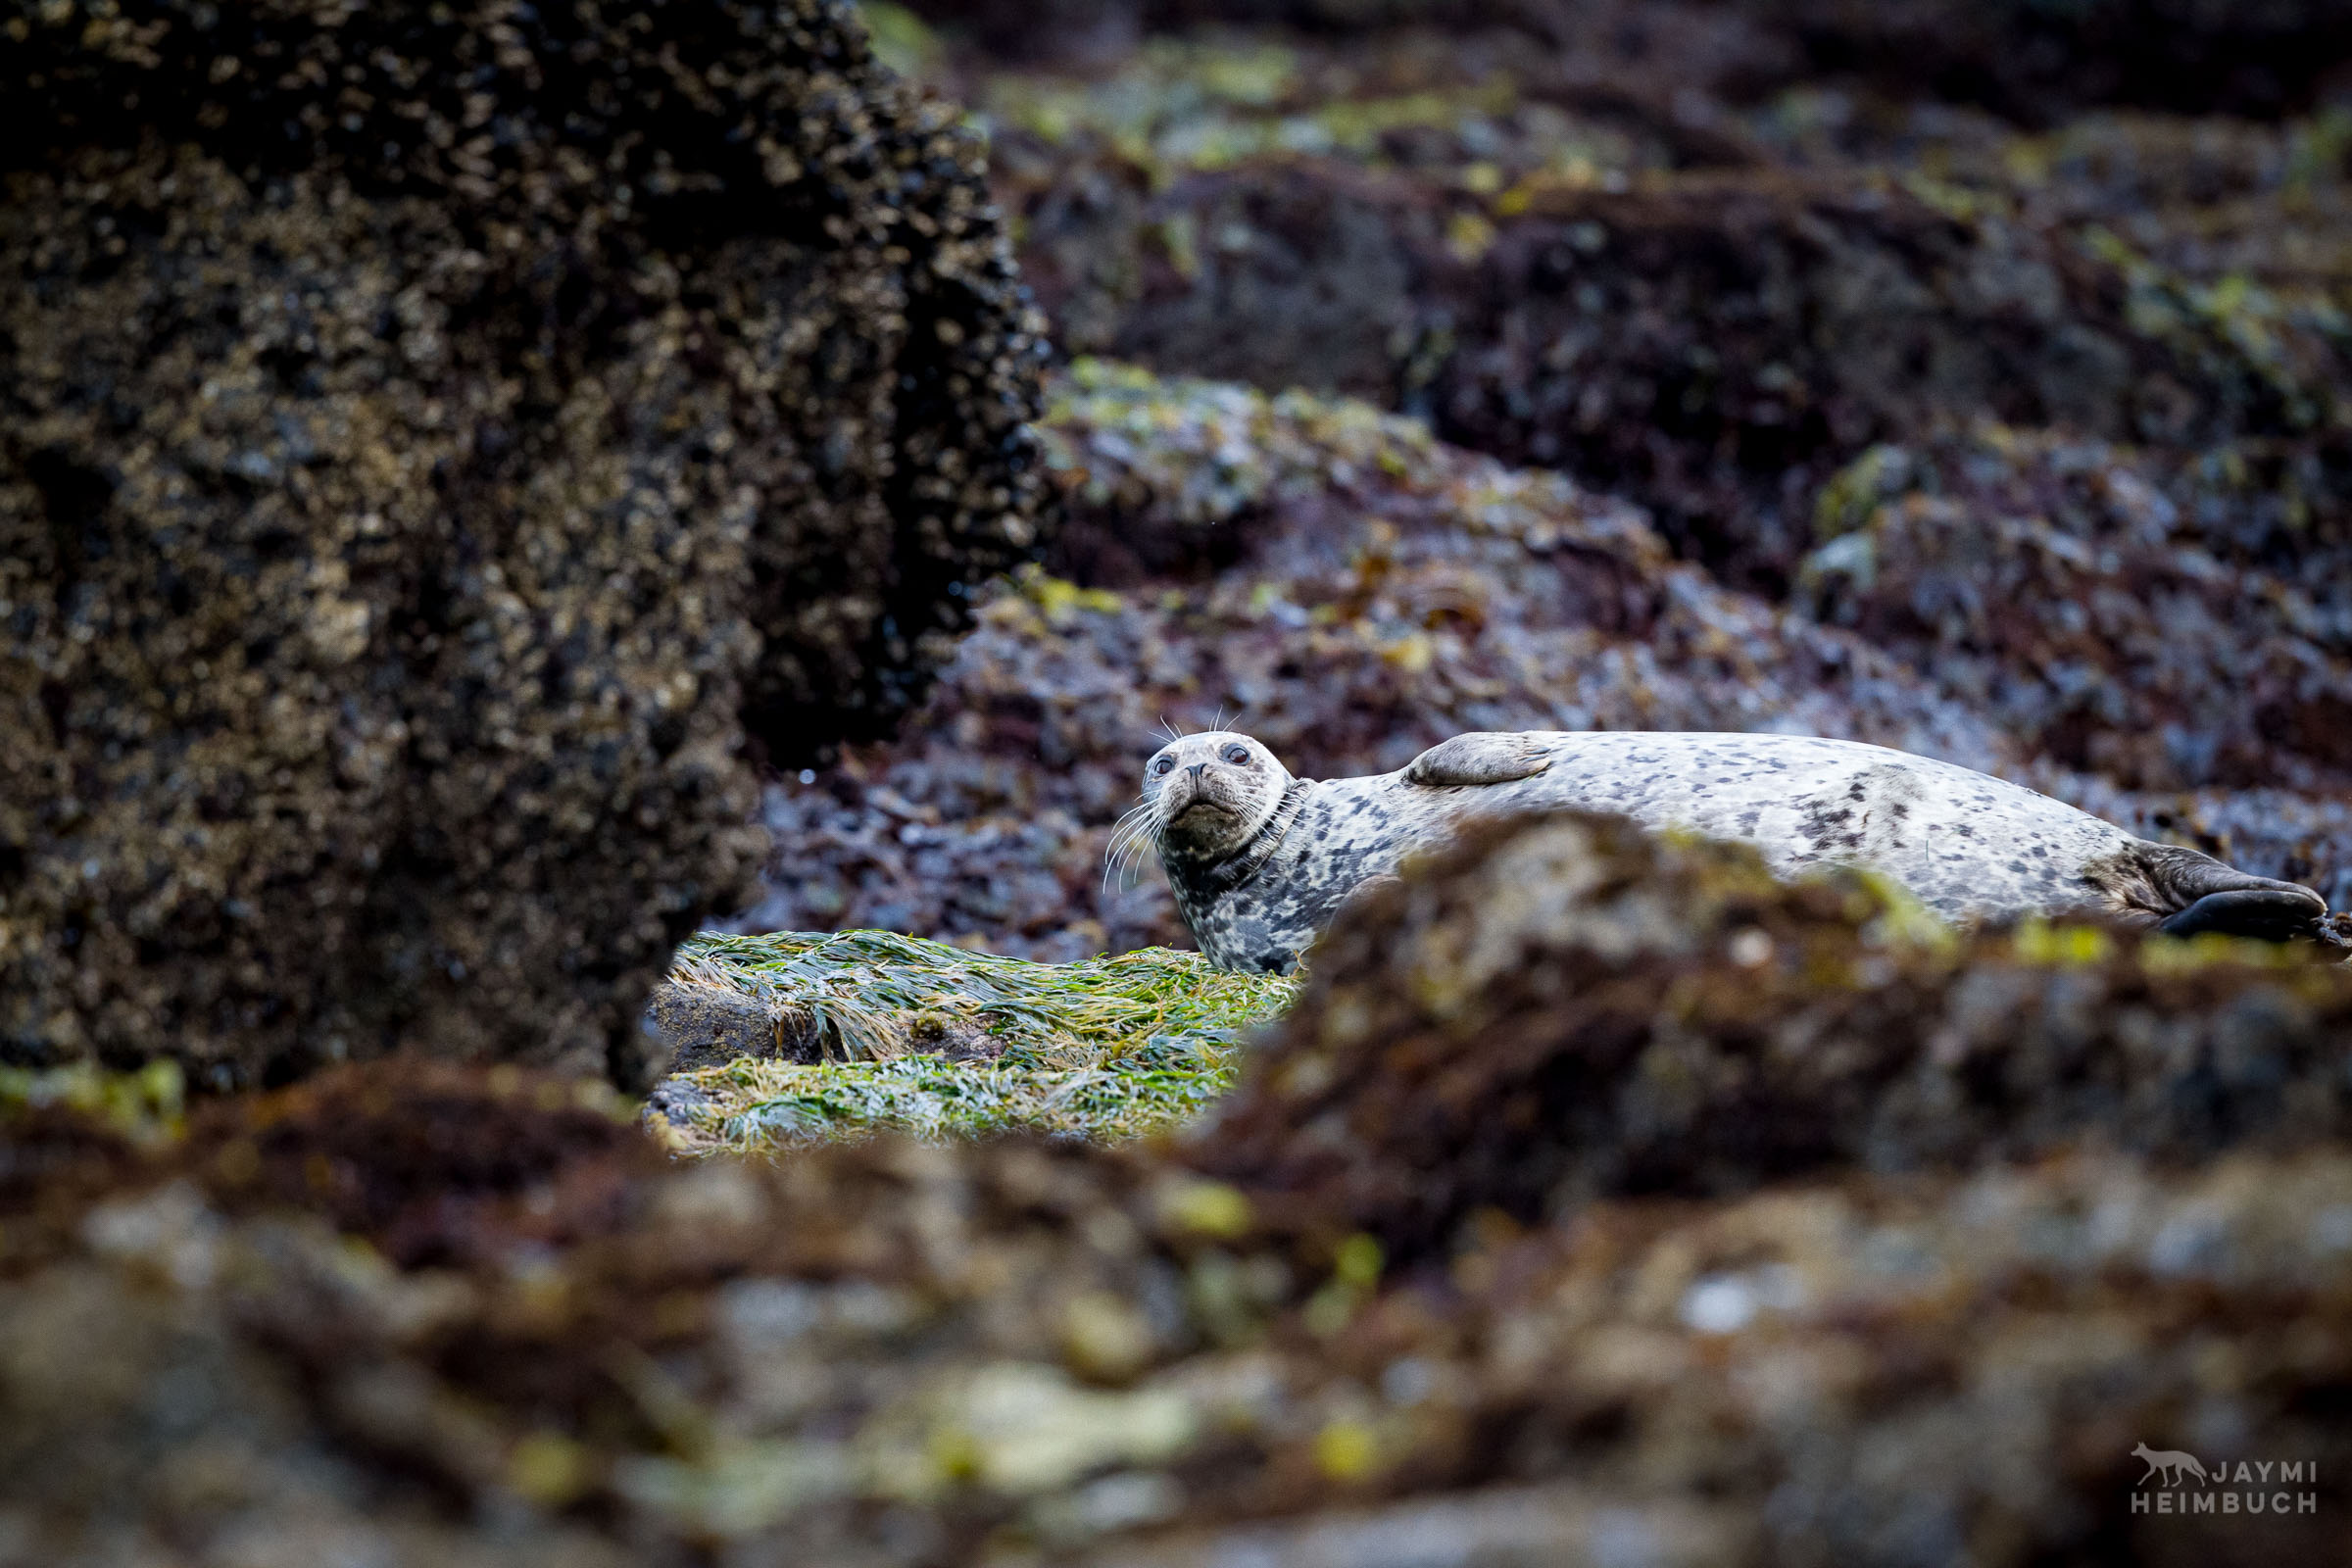 Harbor seal, Phoca vitulina, at rest in the rocky intertidal at low tide. Newport, Oregon